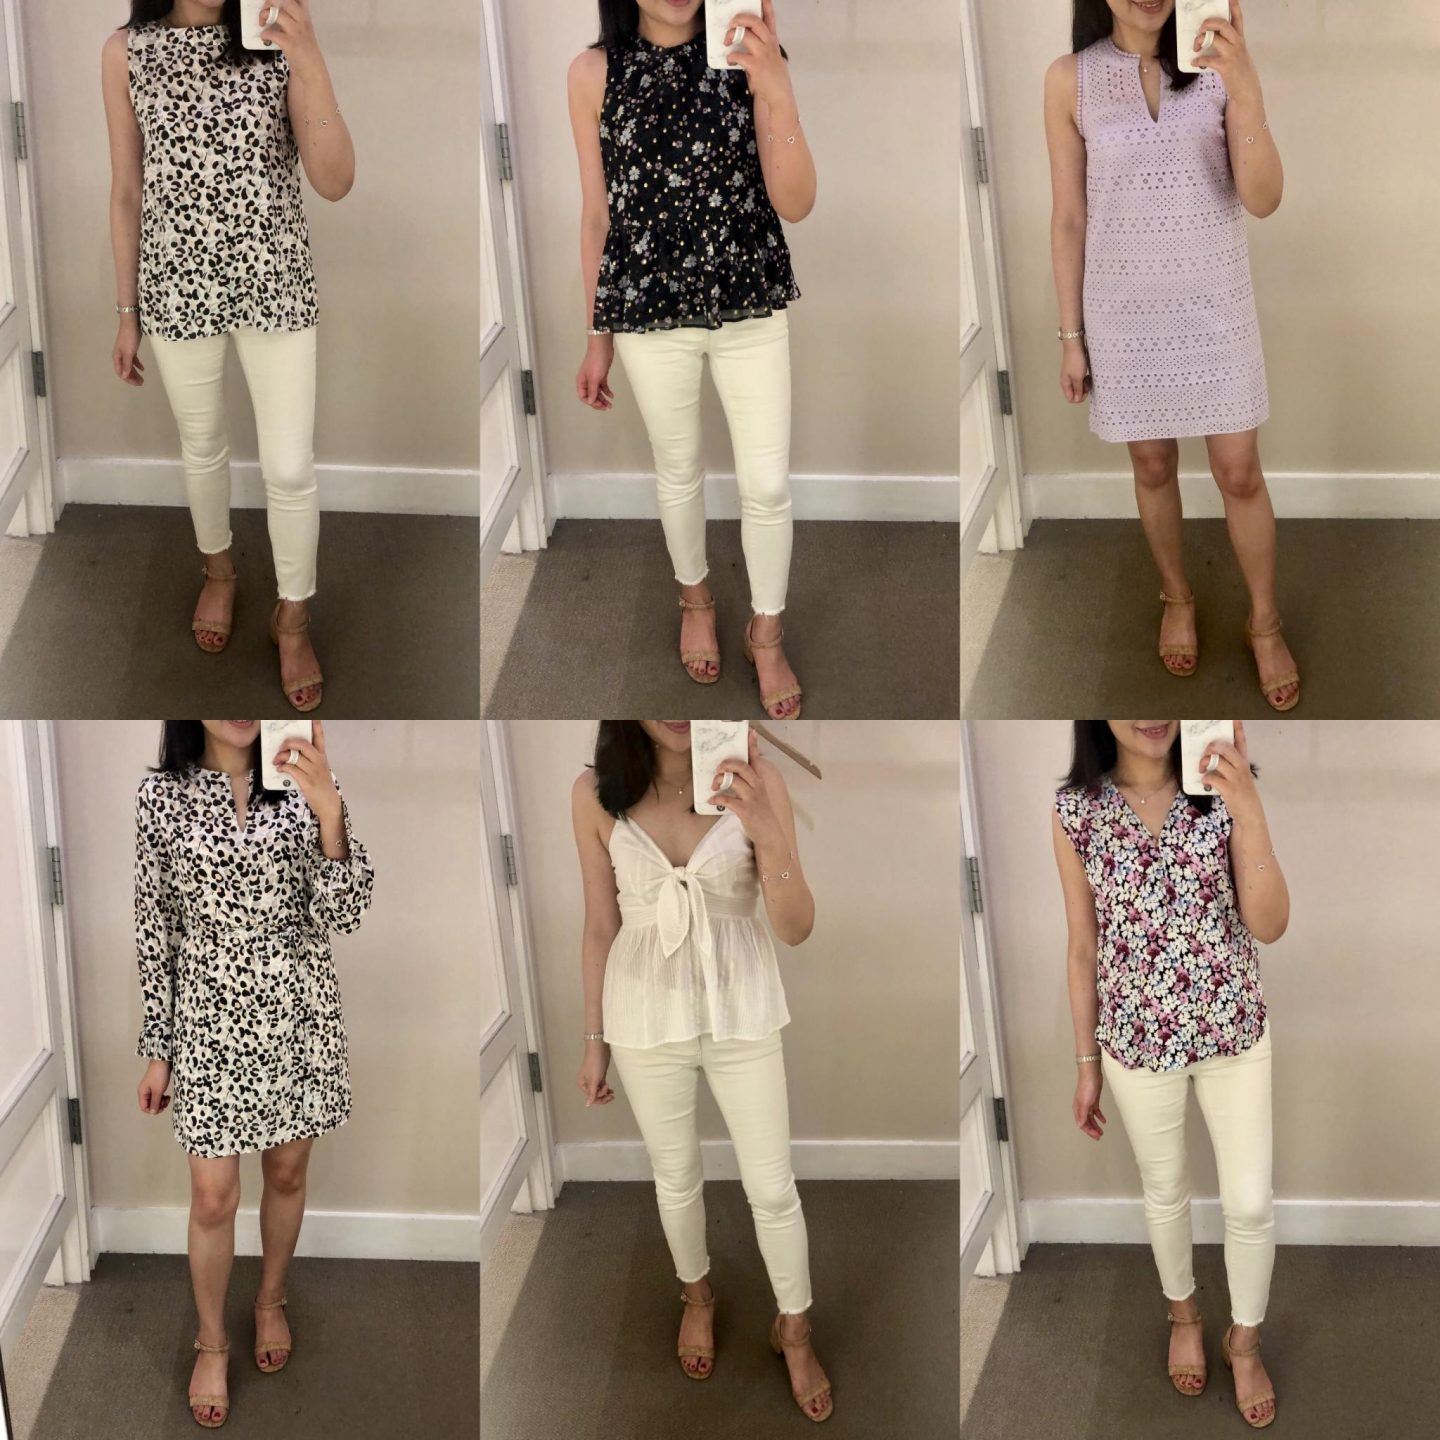 LOFT Reviews on www.whatjesswore.com